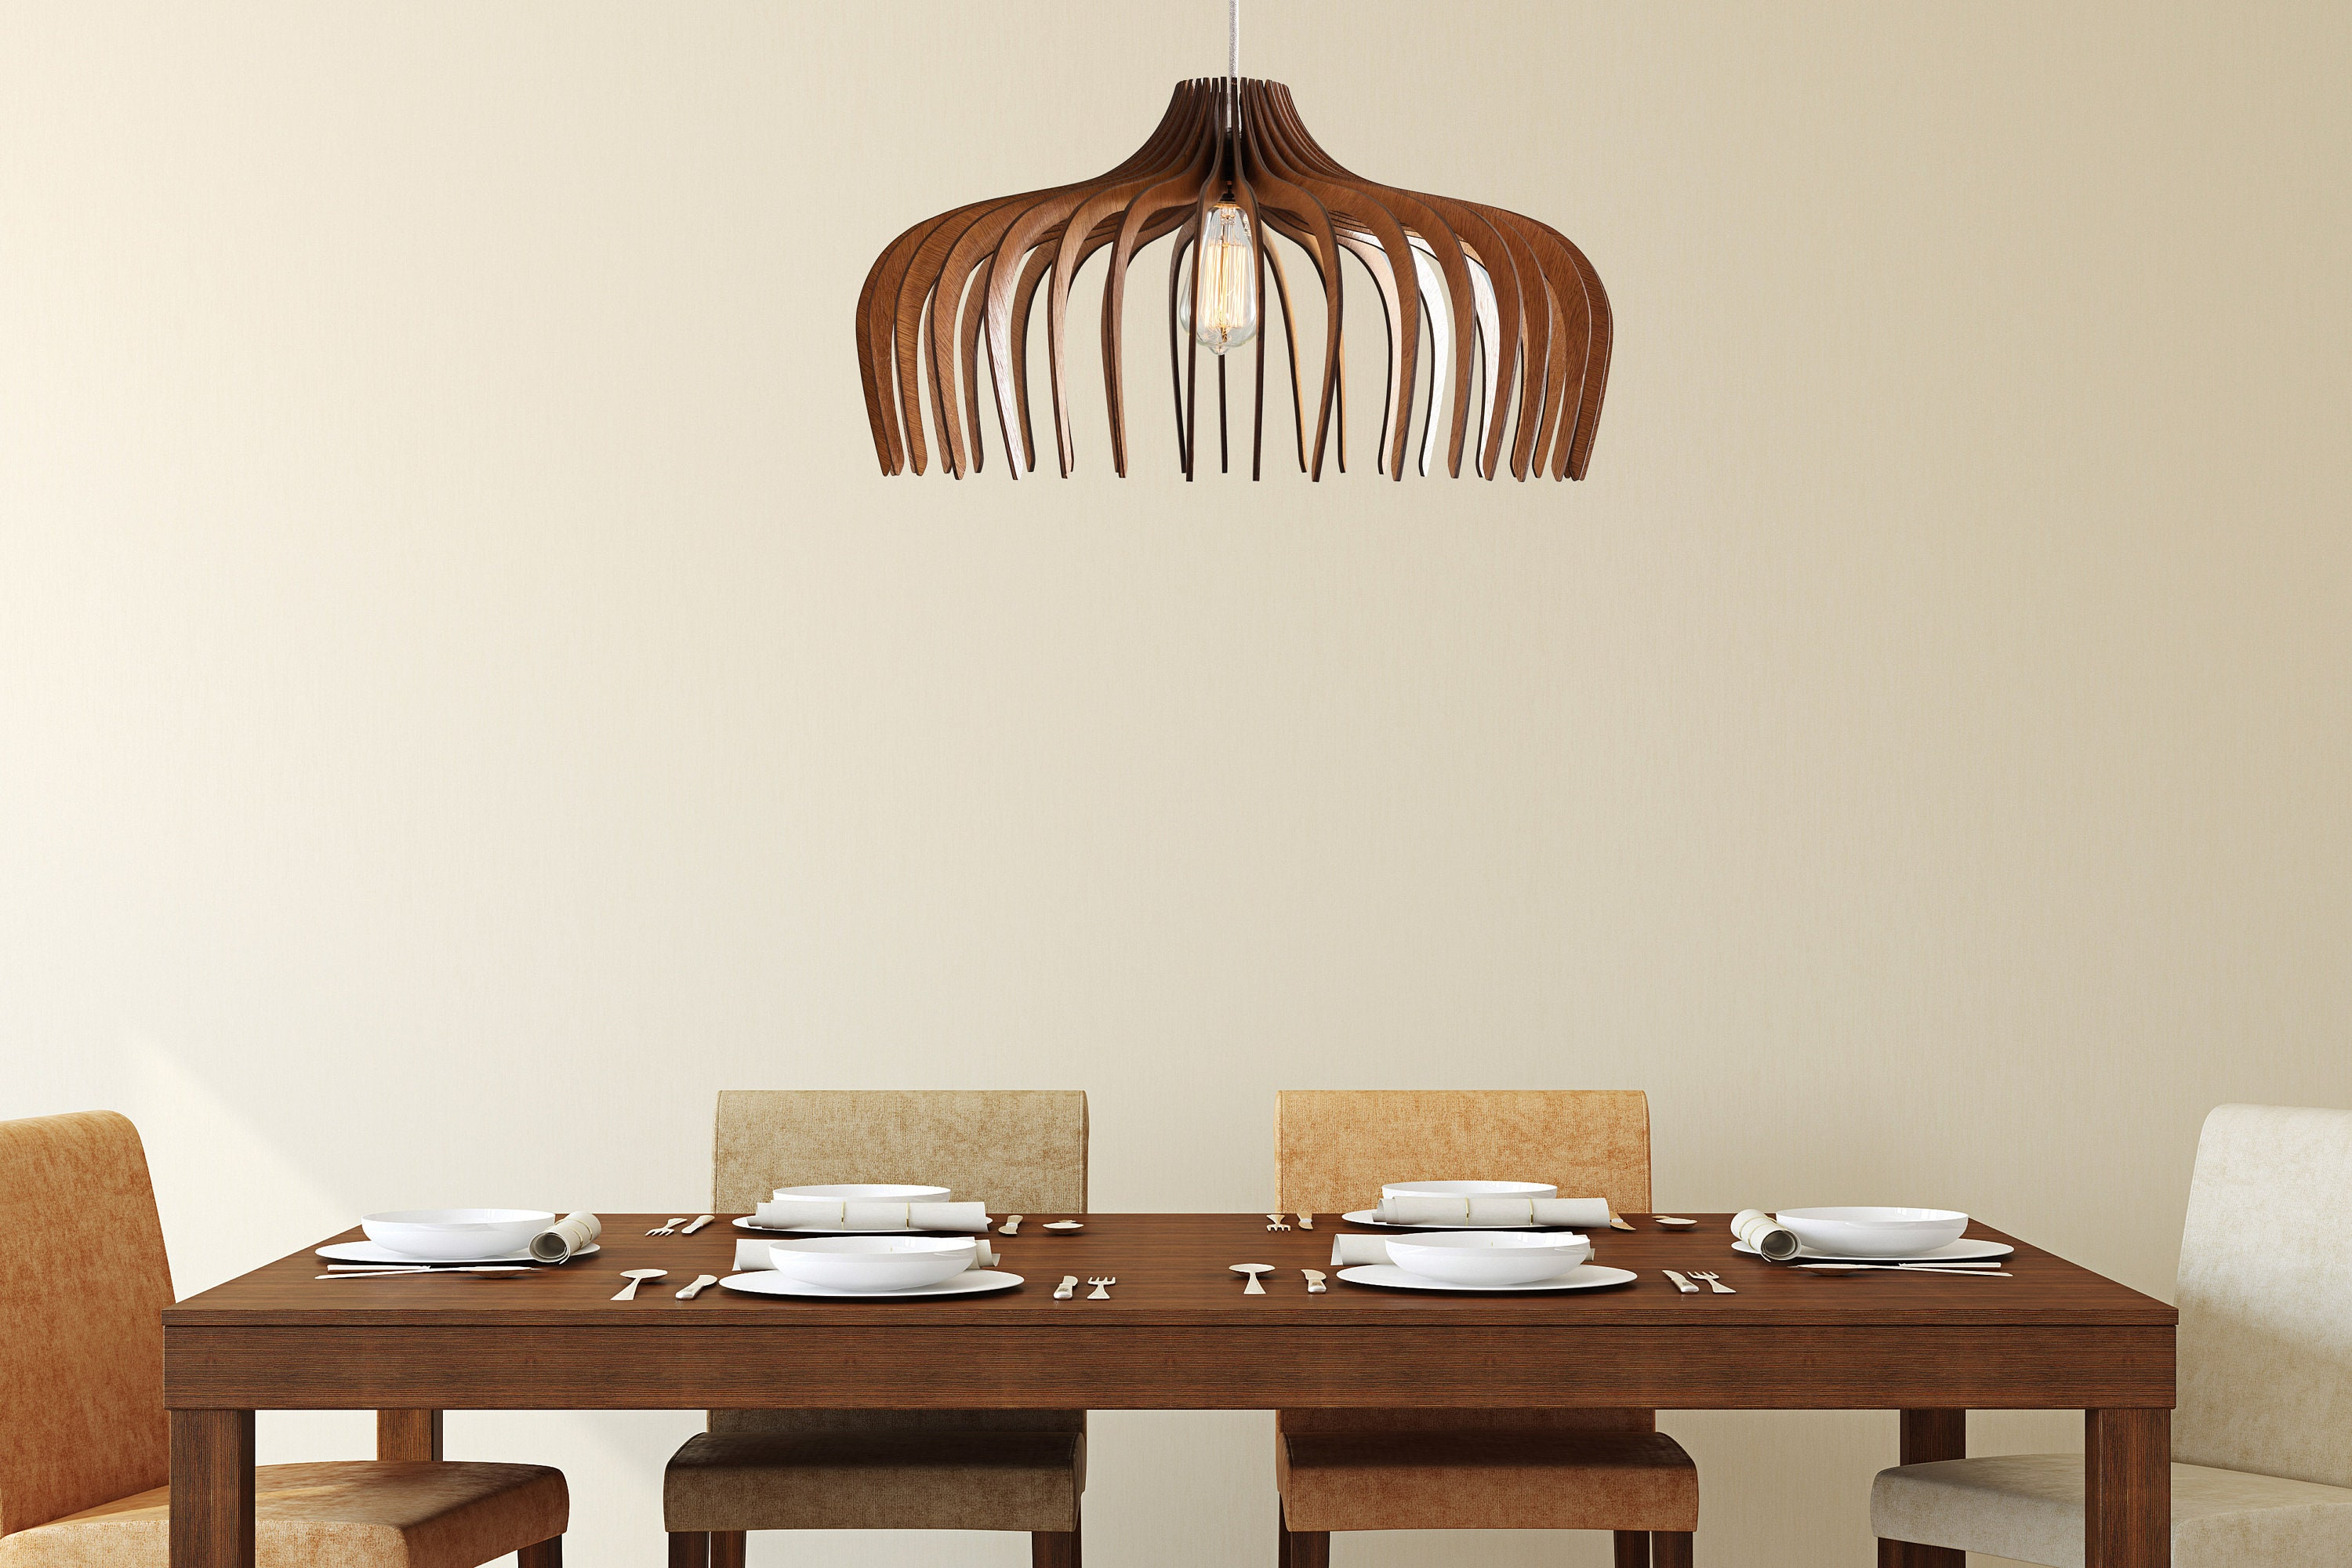 Wood Pendant Light   Modern Chandelier Lighting   Hanging Dining Lamp   Ceiling  Light Fixture   Geometric Lamp   Minimal   Contemporary